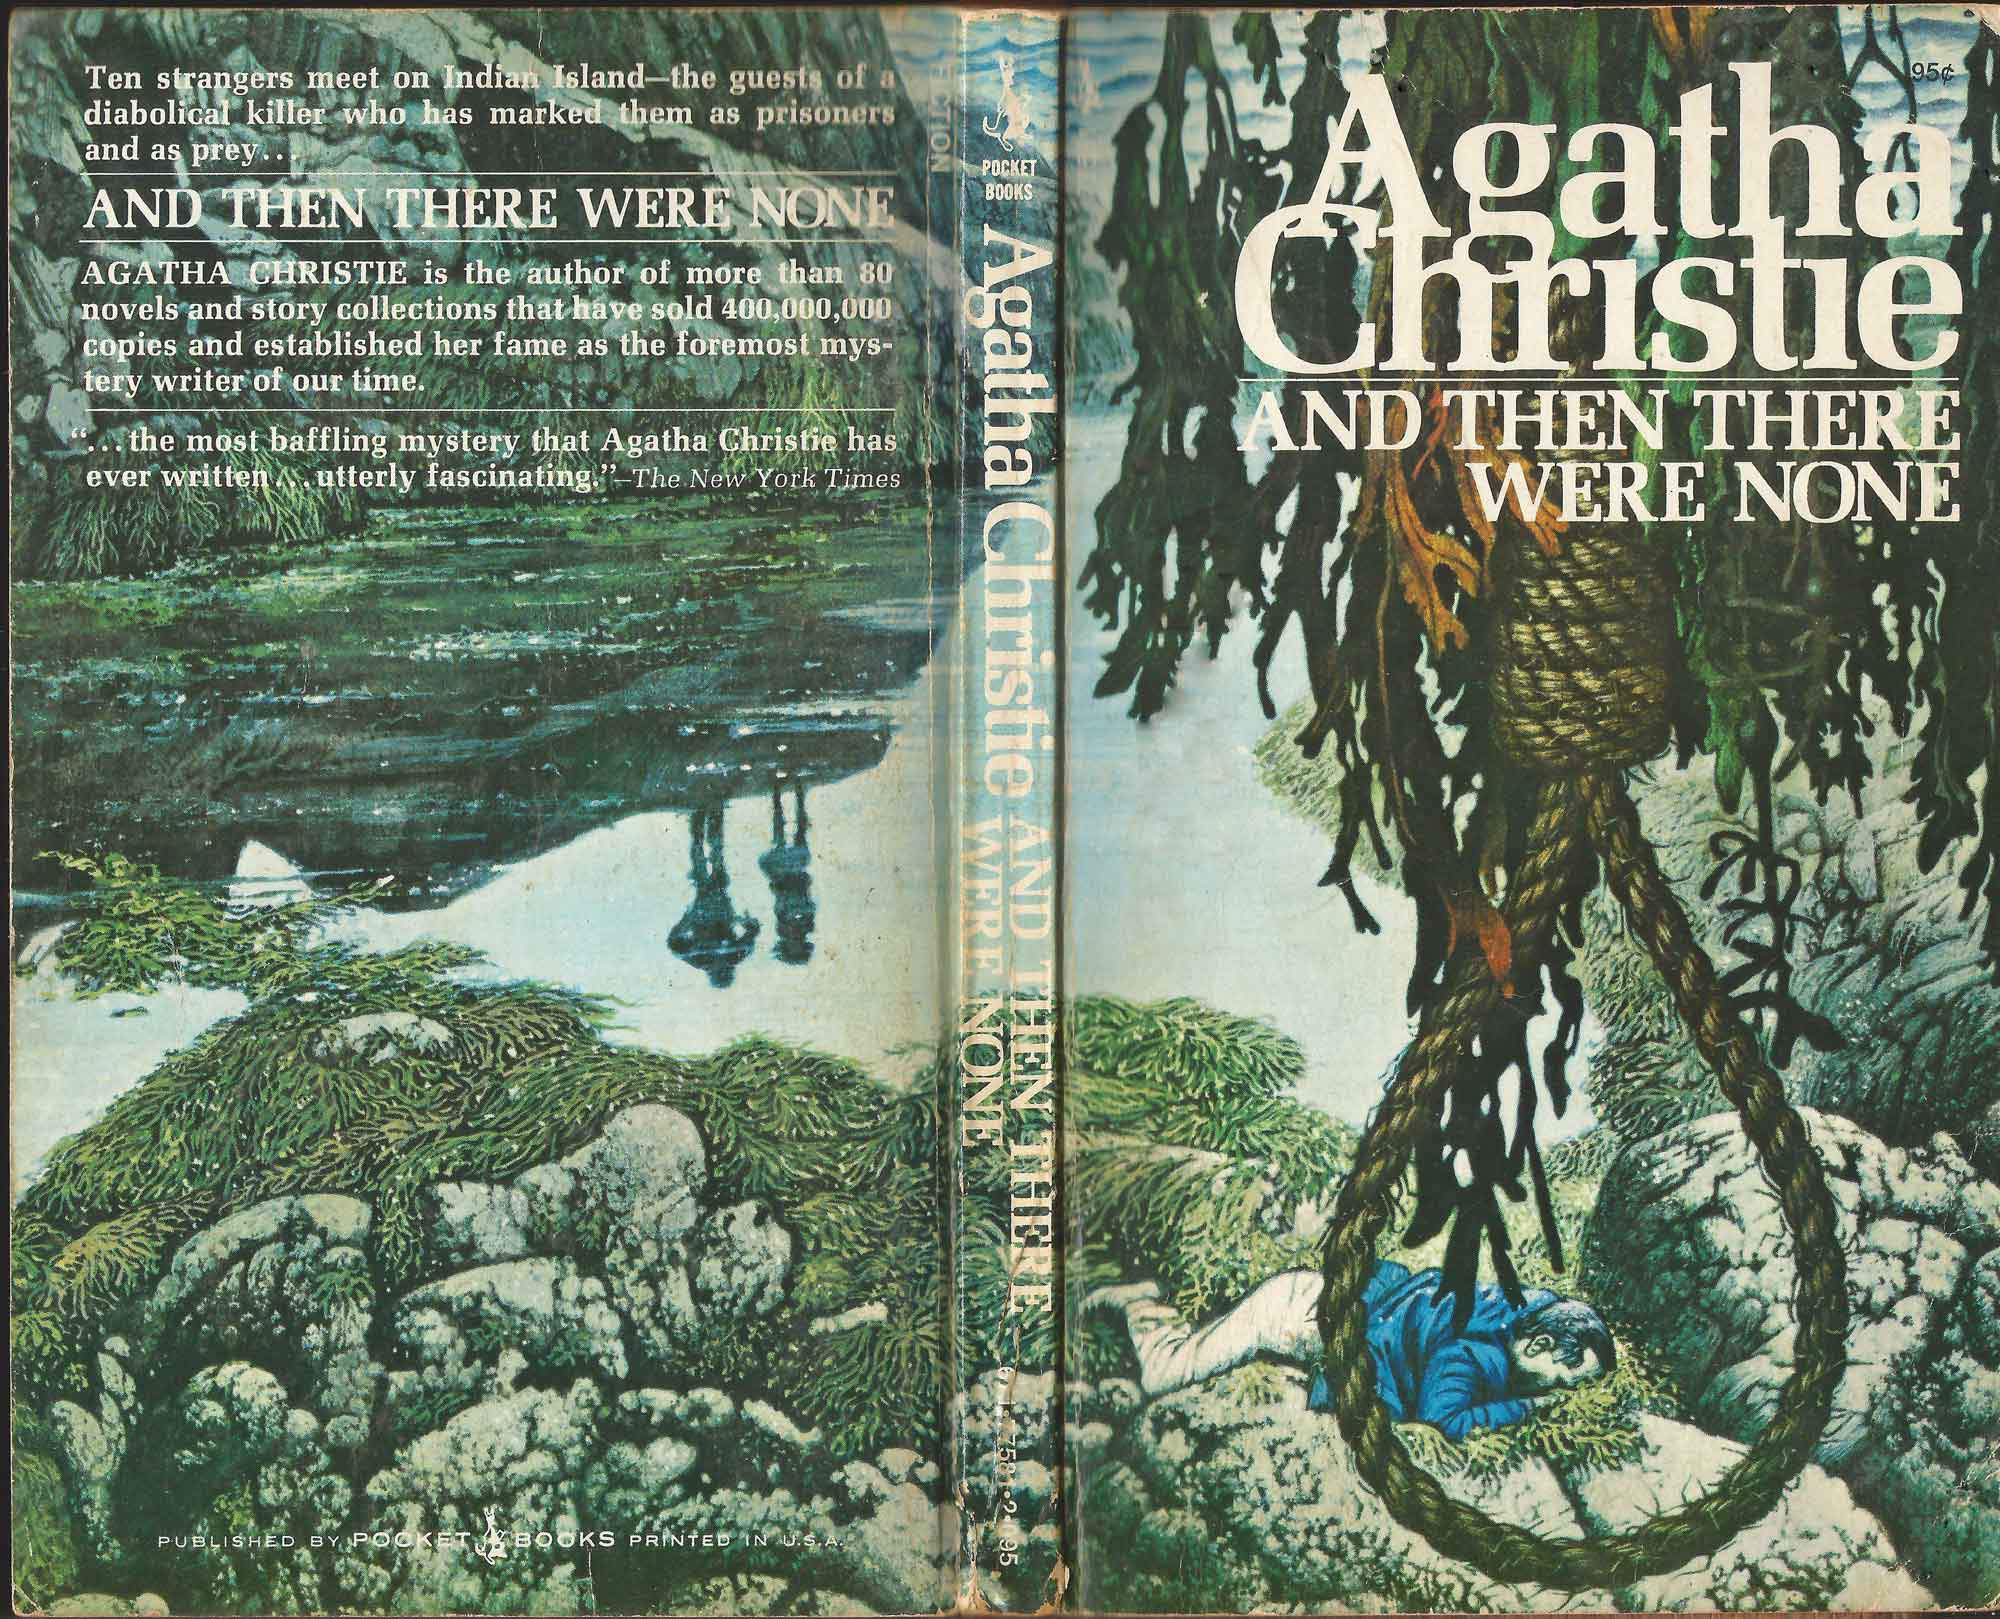 Agatha Christie Tom Adams And then there were none Pocket Books sm